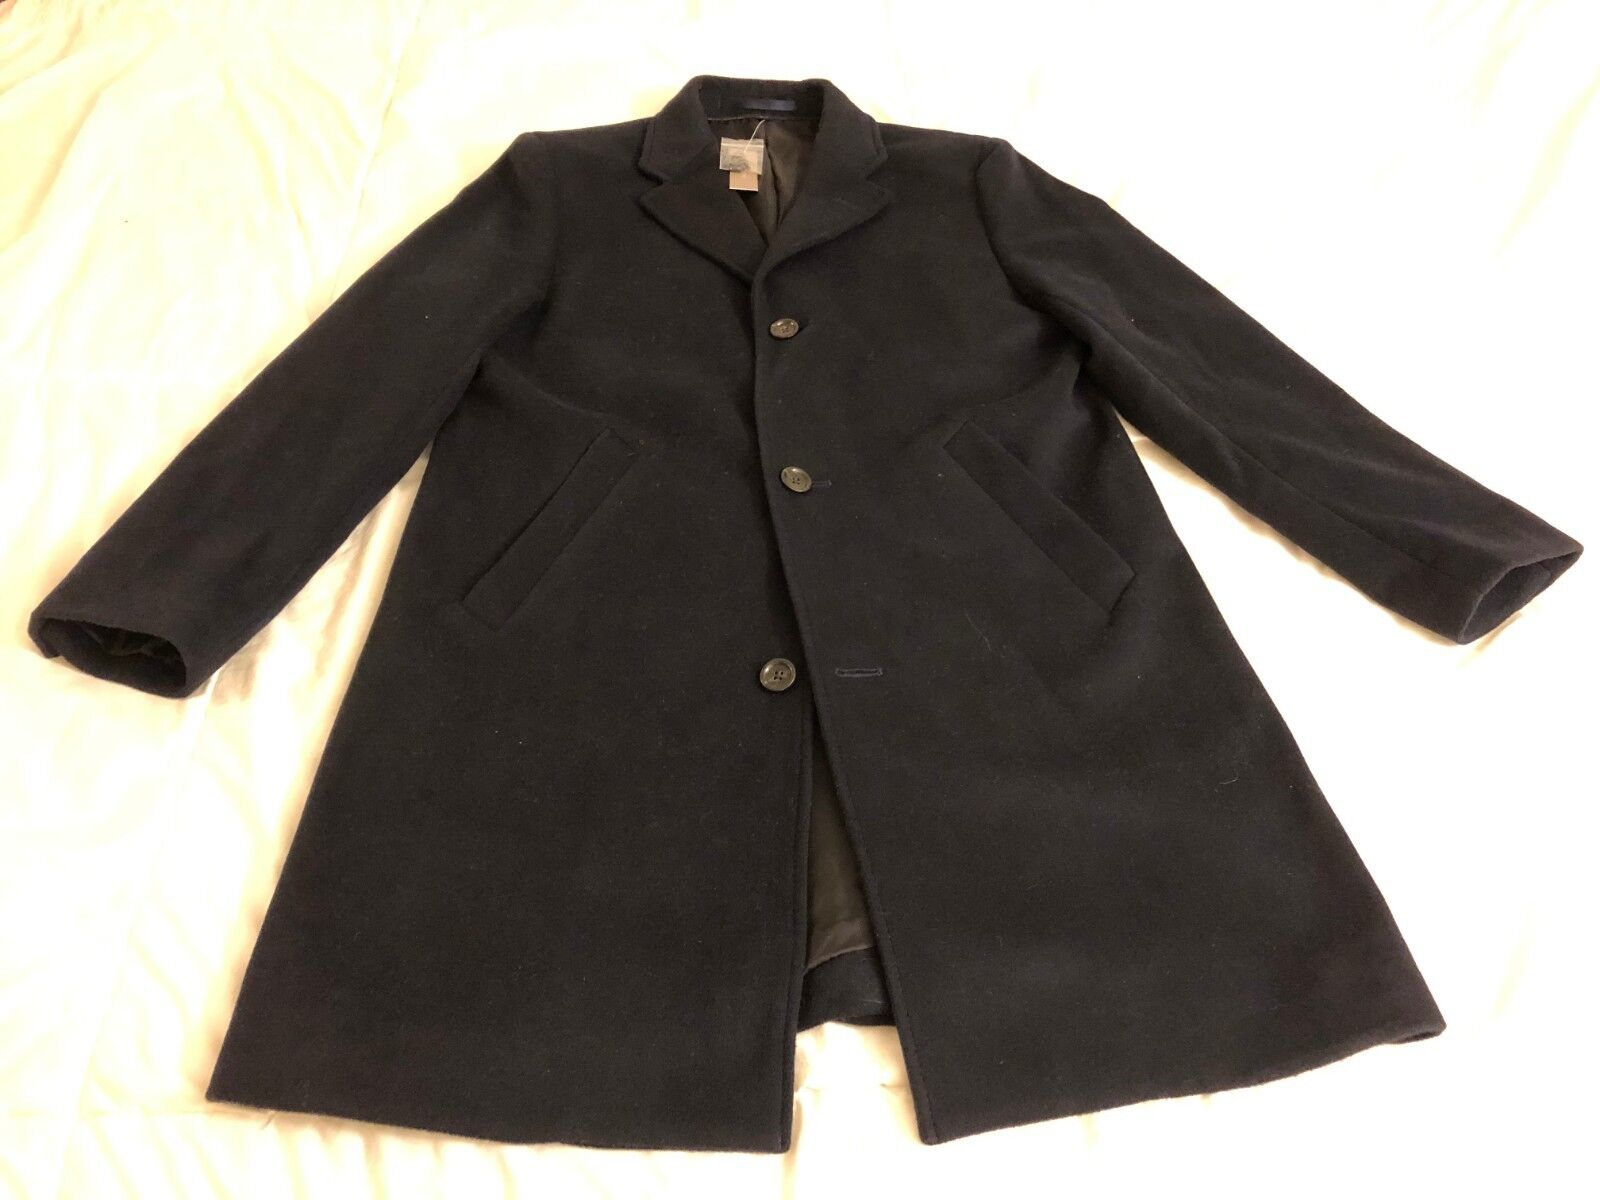 J.Crew Ludlow Topcoat in Italian Wool-Cashmere, Navy, 38S, NWT, See Pics